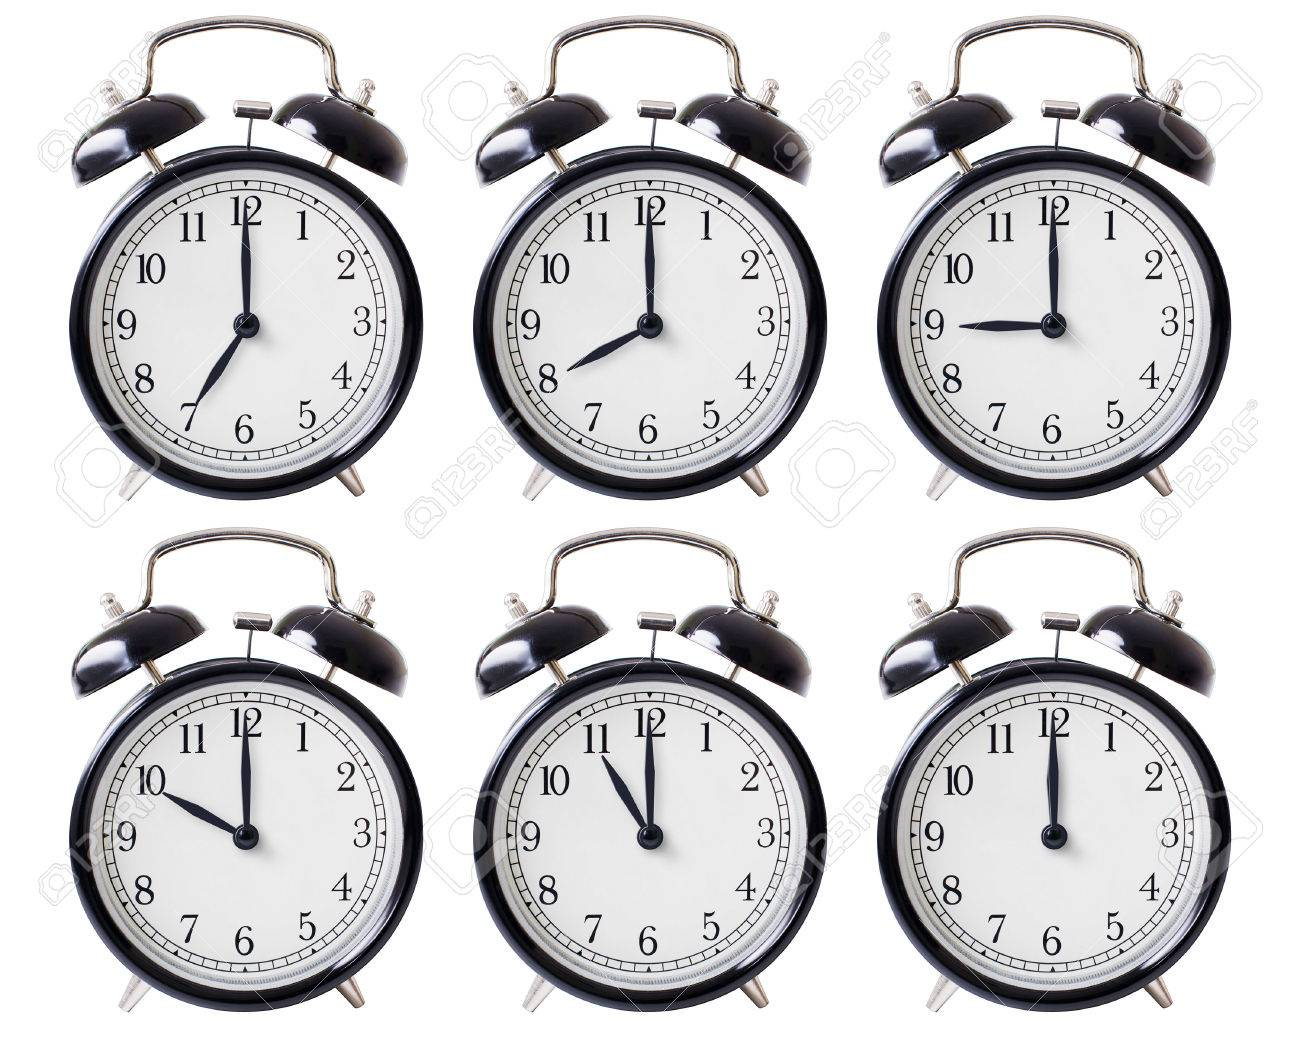 Simple Alarm Clock Set With Hands From 7 To 12 Oclock Isolated